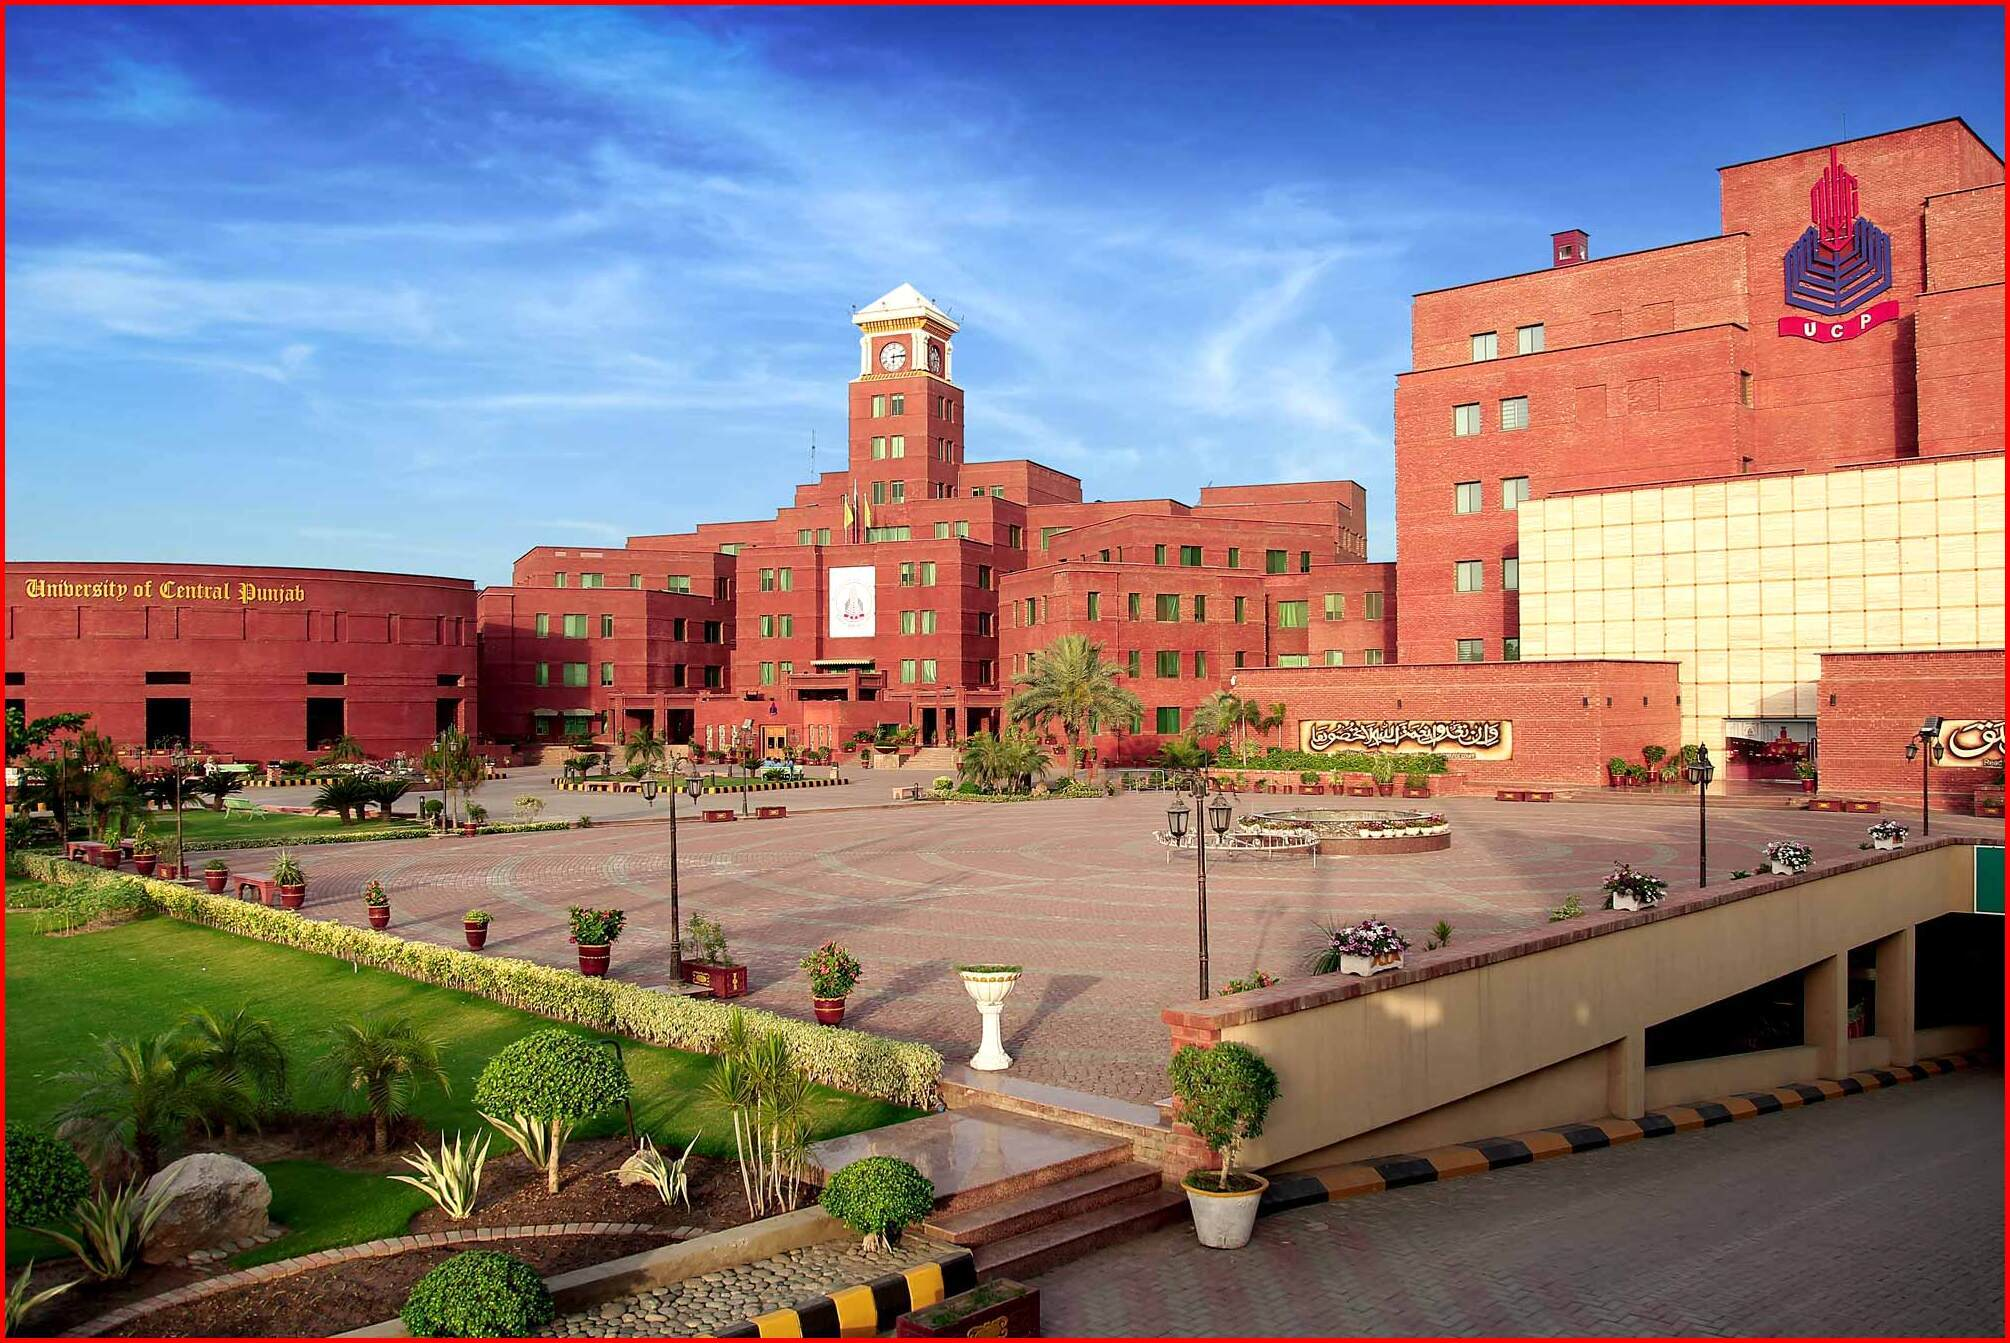 University of Central Punjab(UCP) Admission Fall 2020